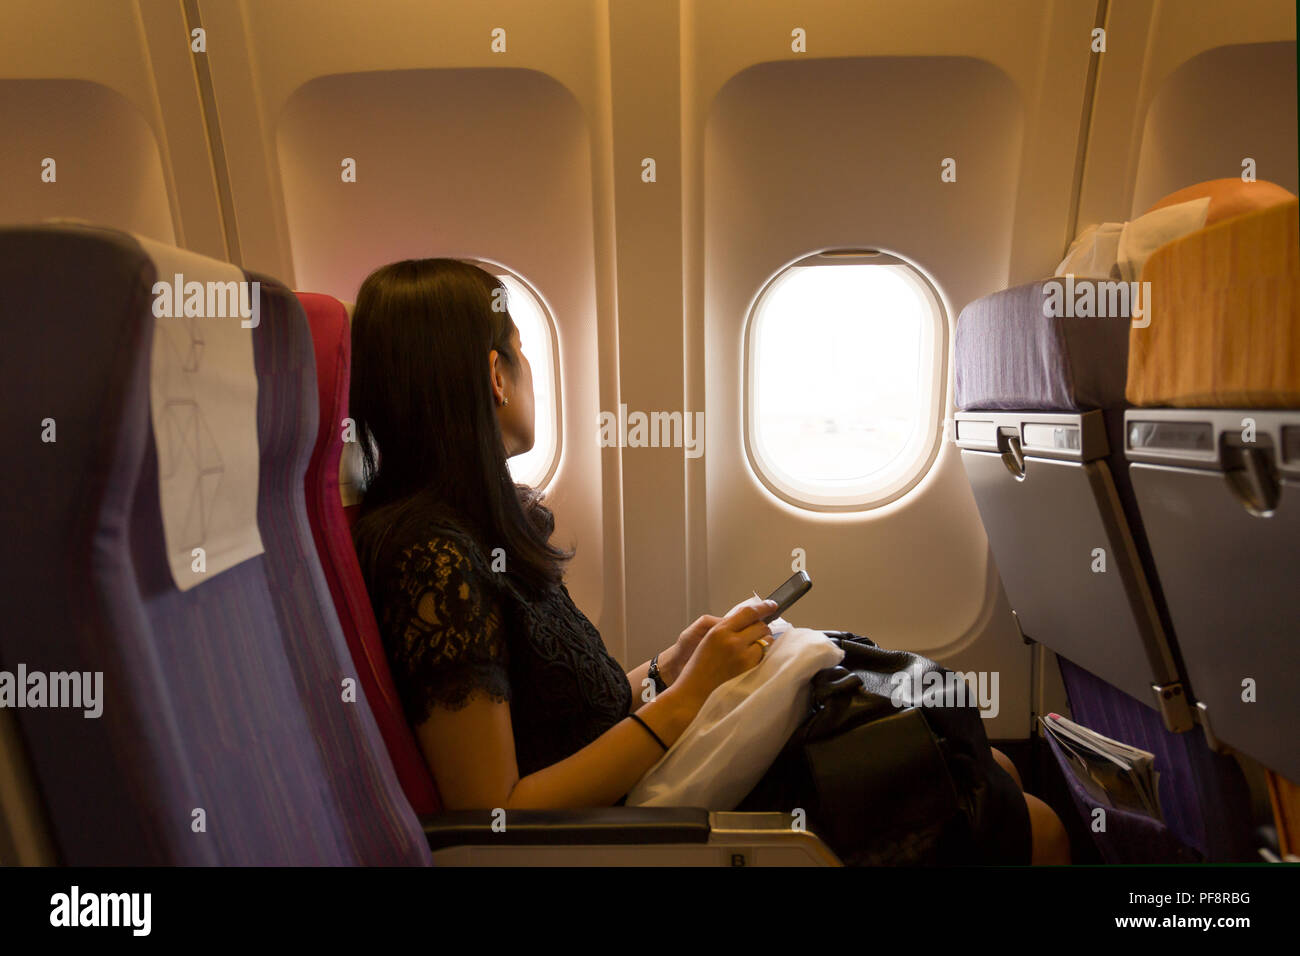 Business woman on plane seat hand holding cell phone - Stock Image